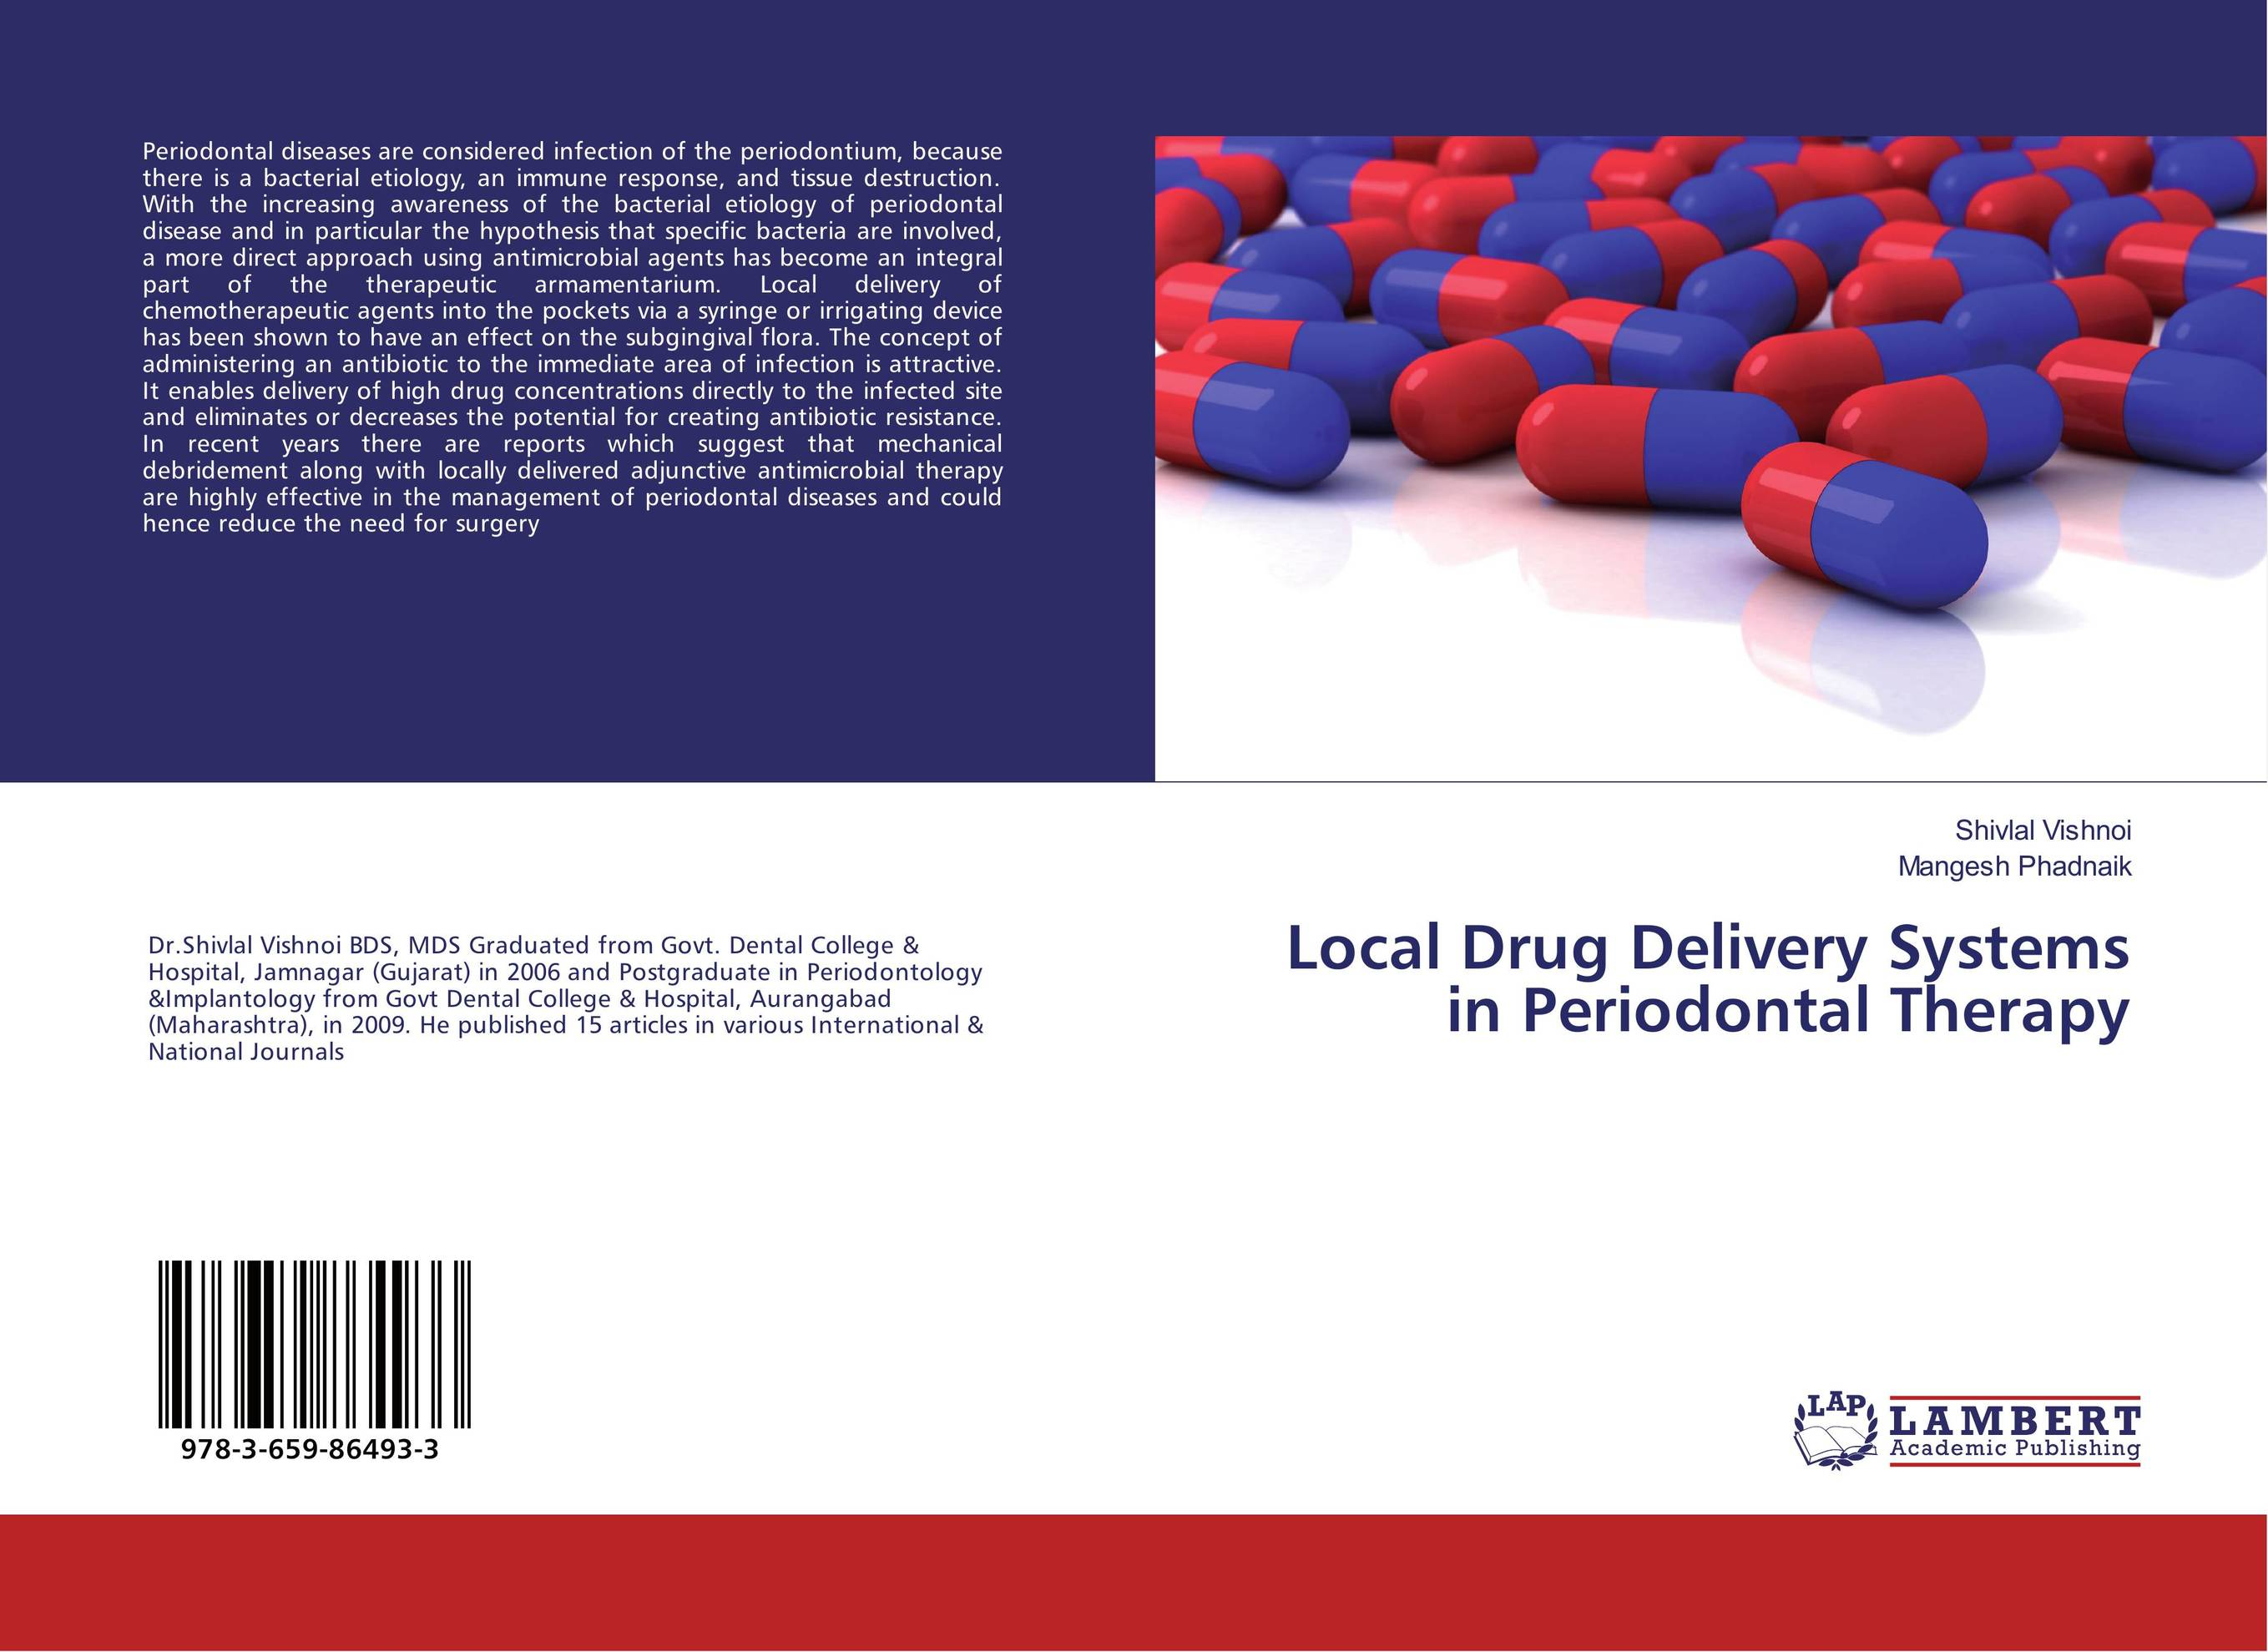 Local Drug Delivery Systems in Periodontal Therapy chandni monga amarjit singh gill and paramjit kaur khinda periodontal regenerative therapy